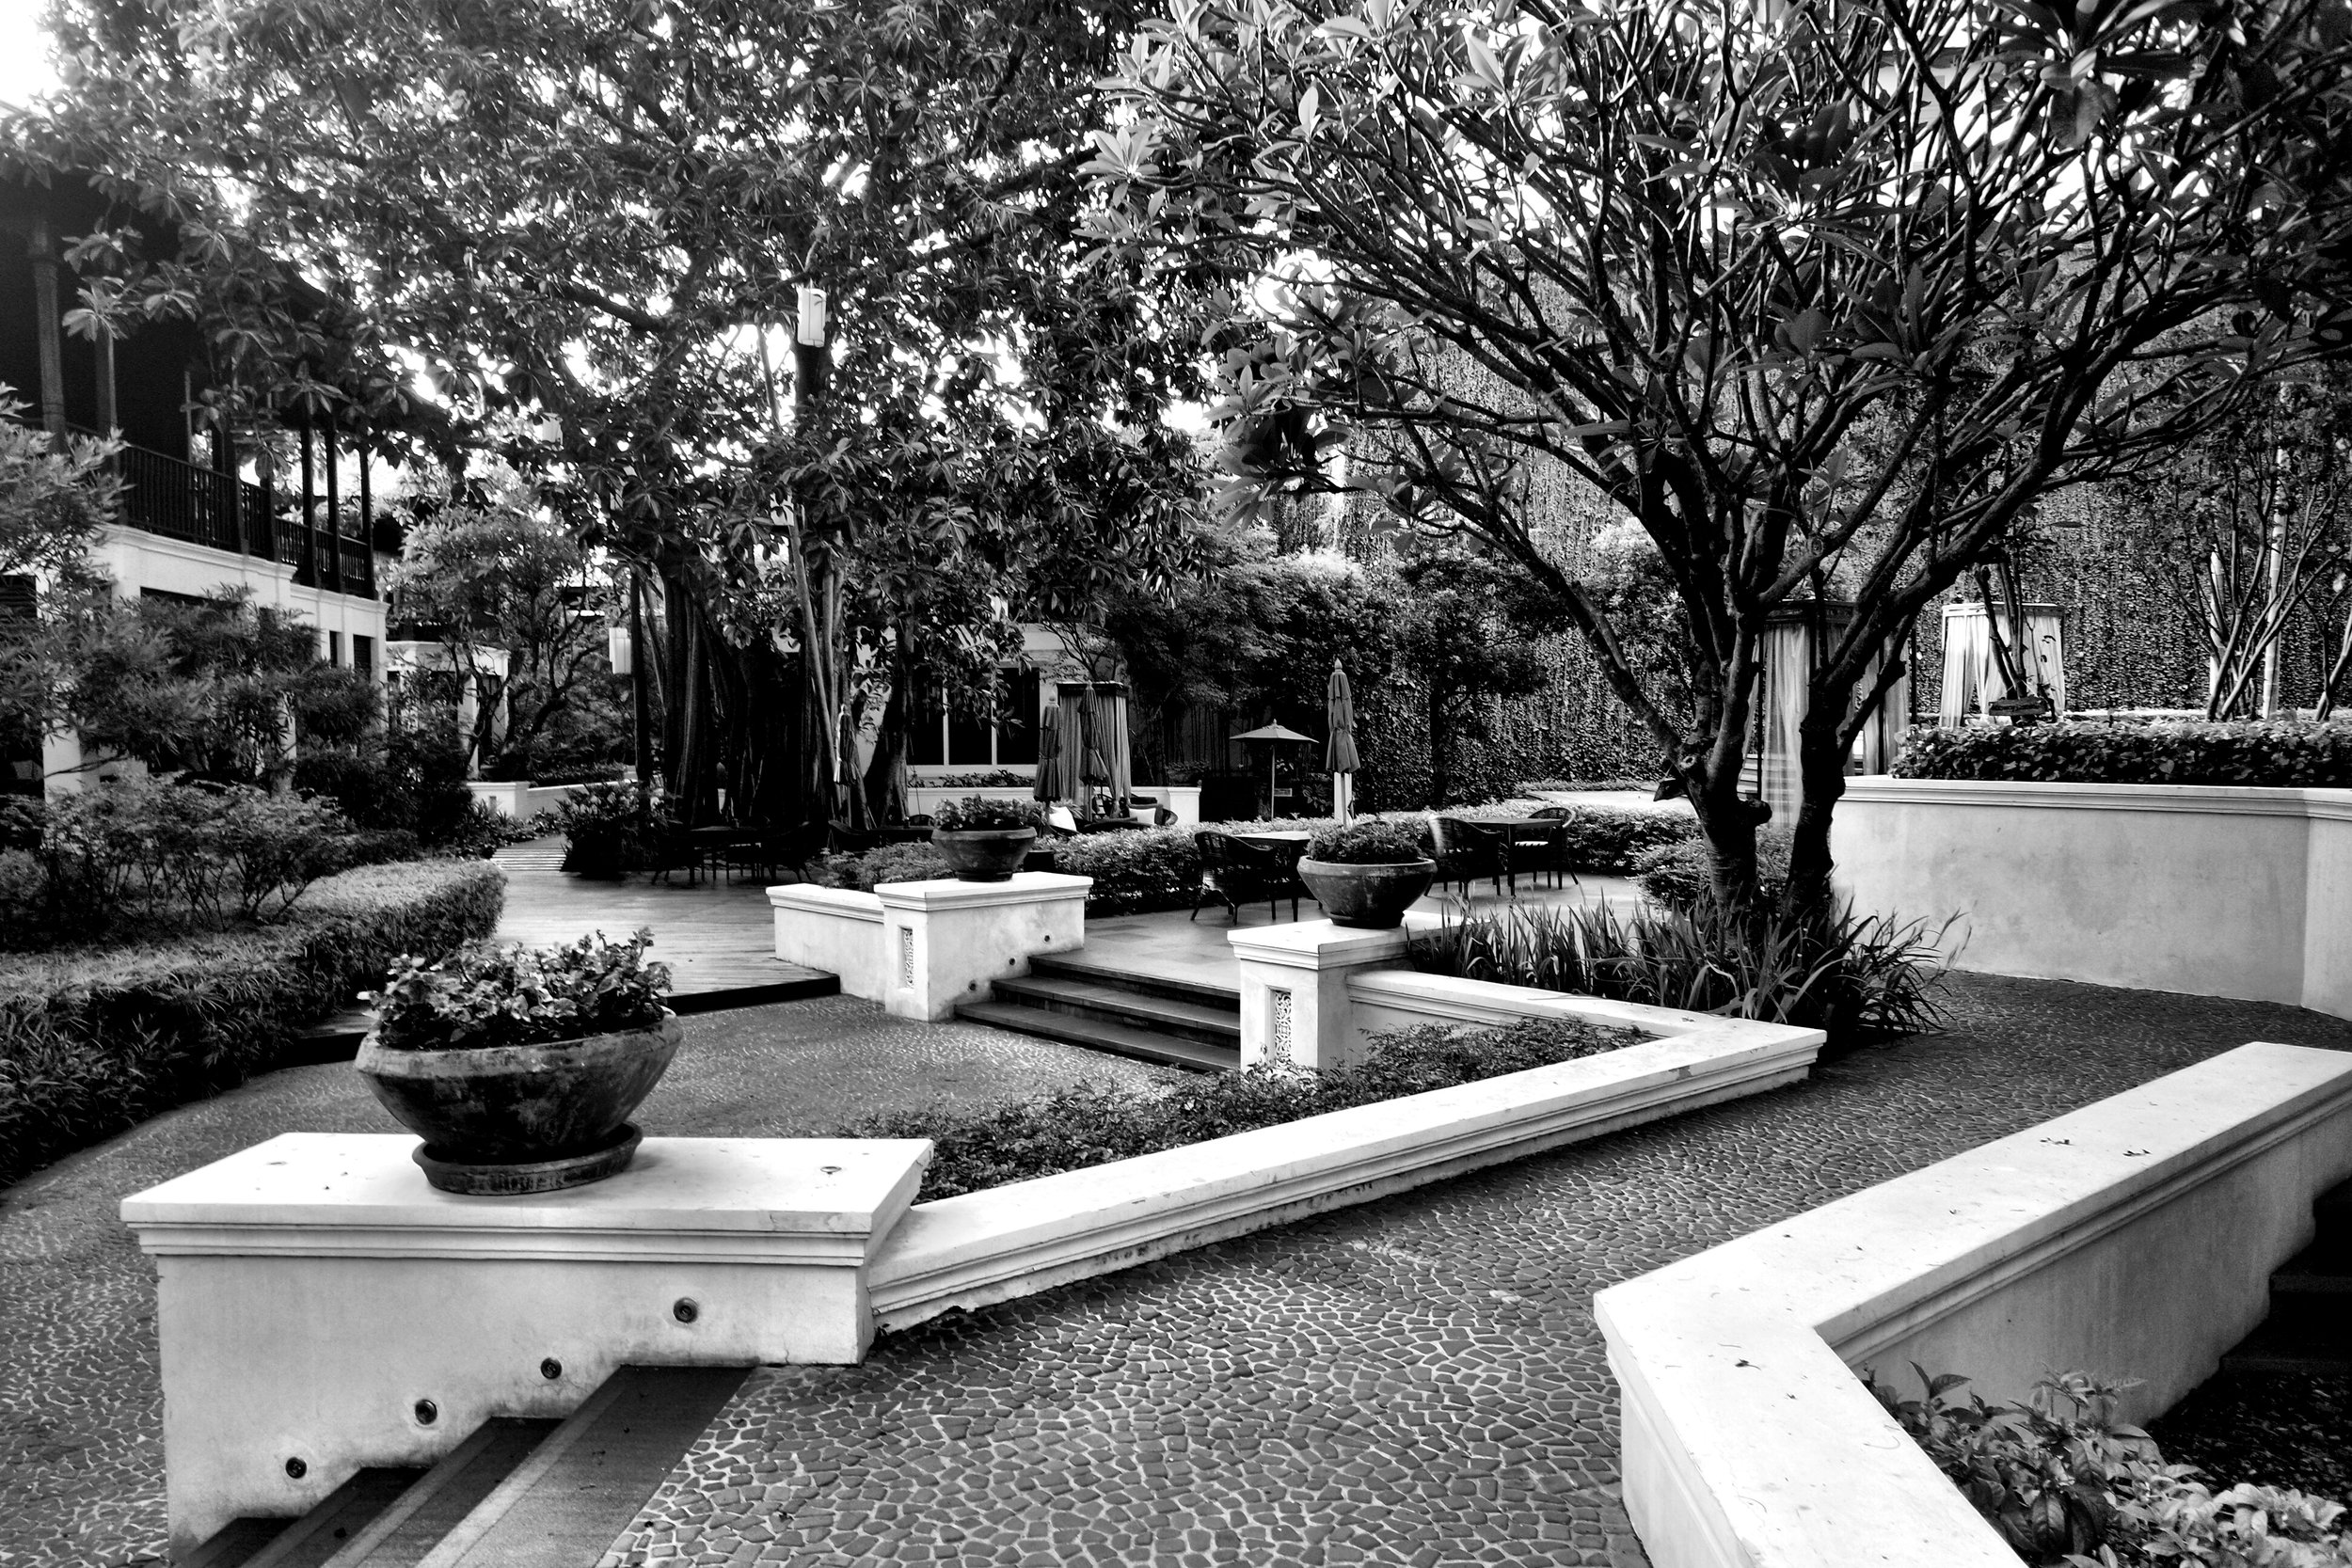 The grounds of the hotel are gorgeous and quiet